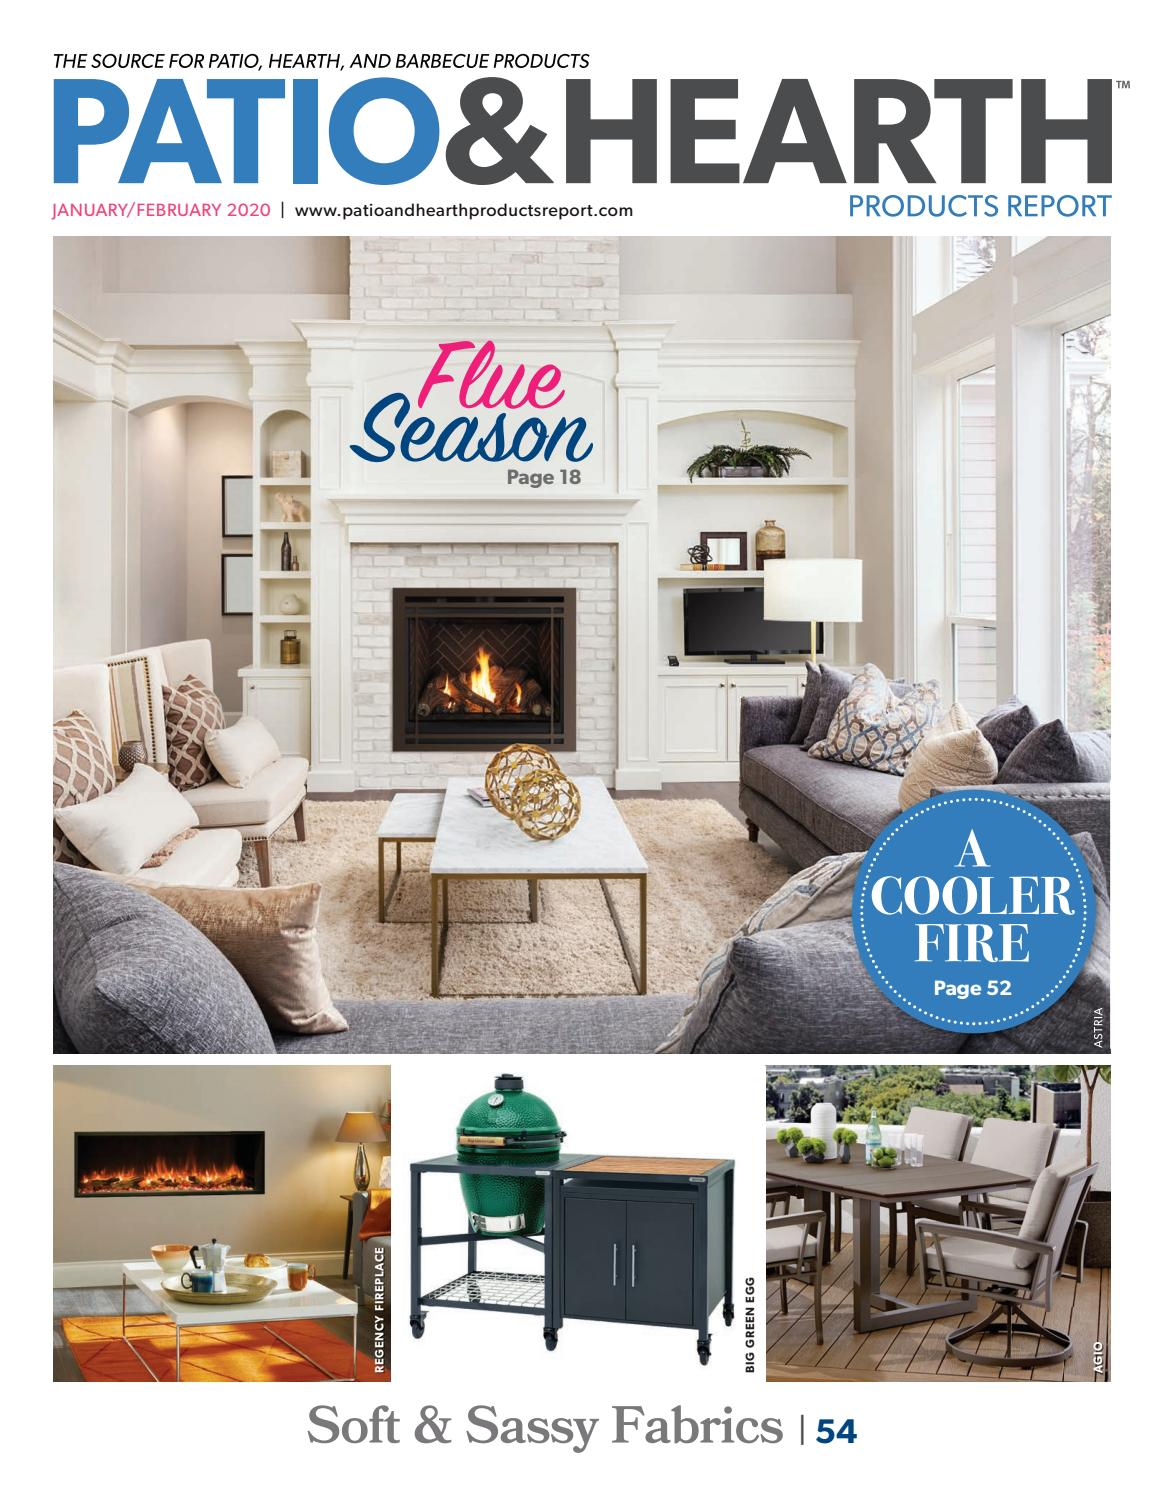 patio and hearth products report jan